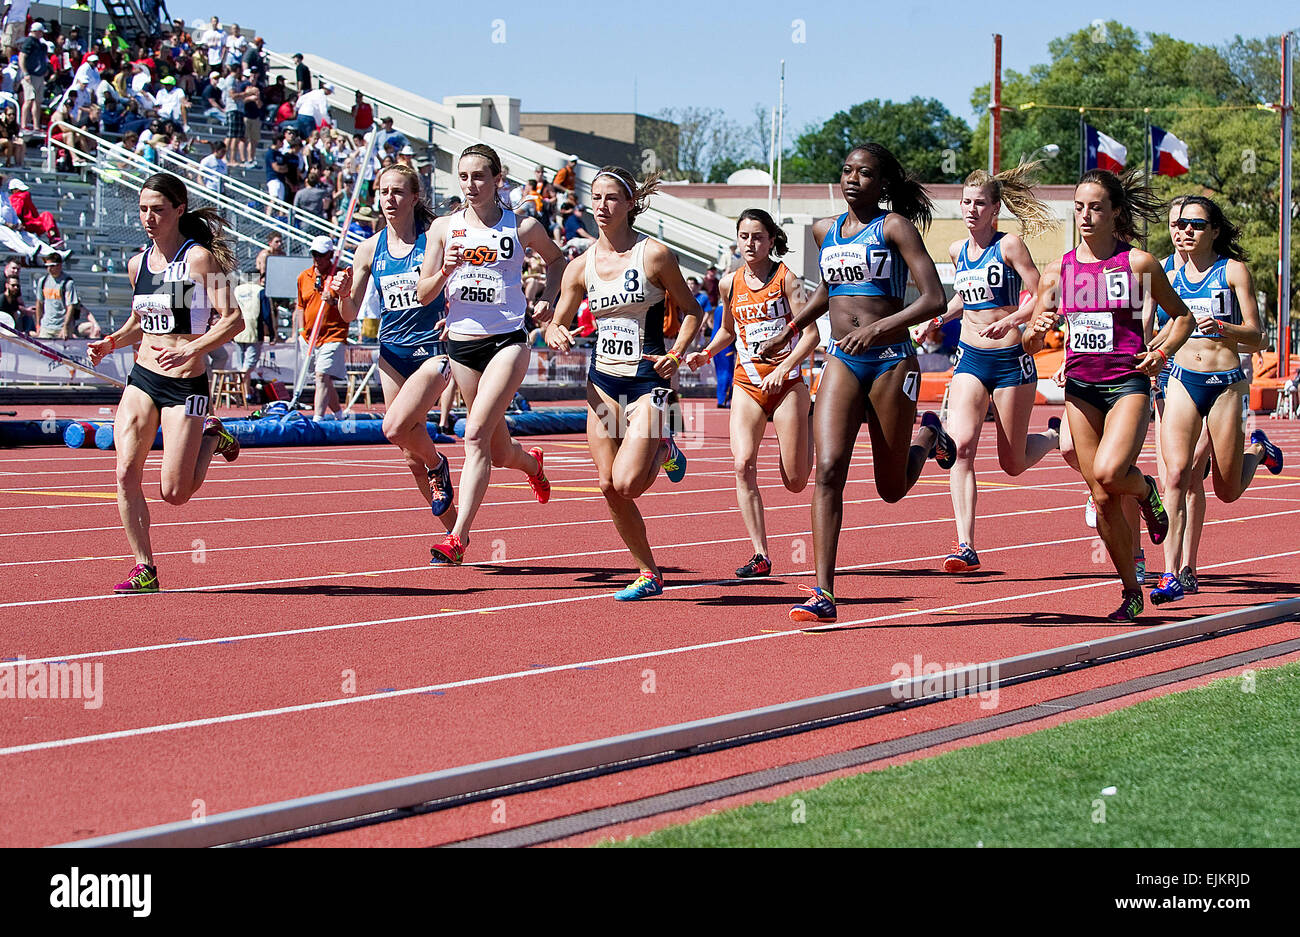 March 28, 2015: Start of the Women's 1500 Meter Run at The 88th NIKE Clyde Littlefield Texas Relays, Mike A. - Stock Image